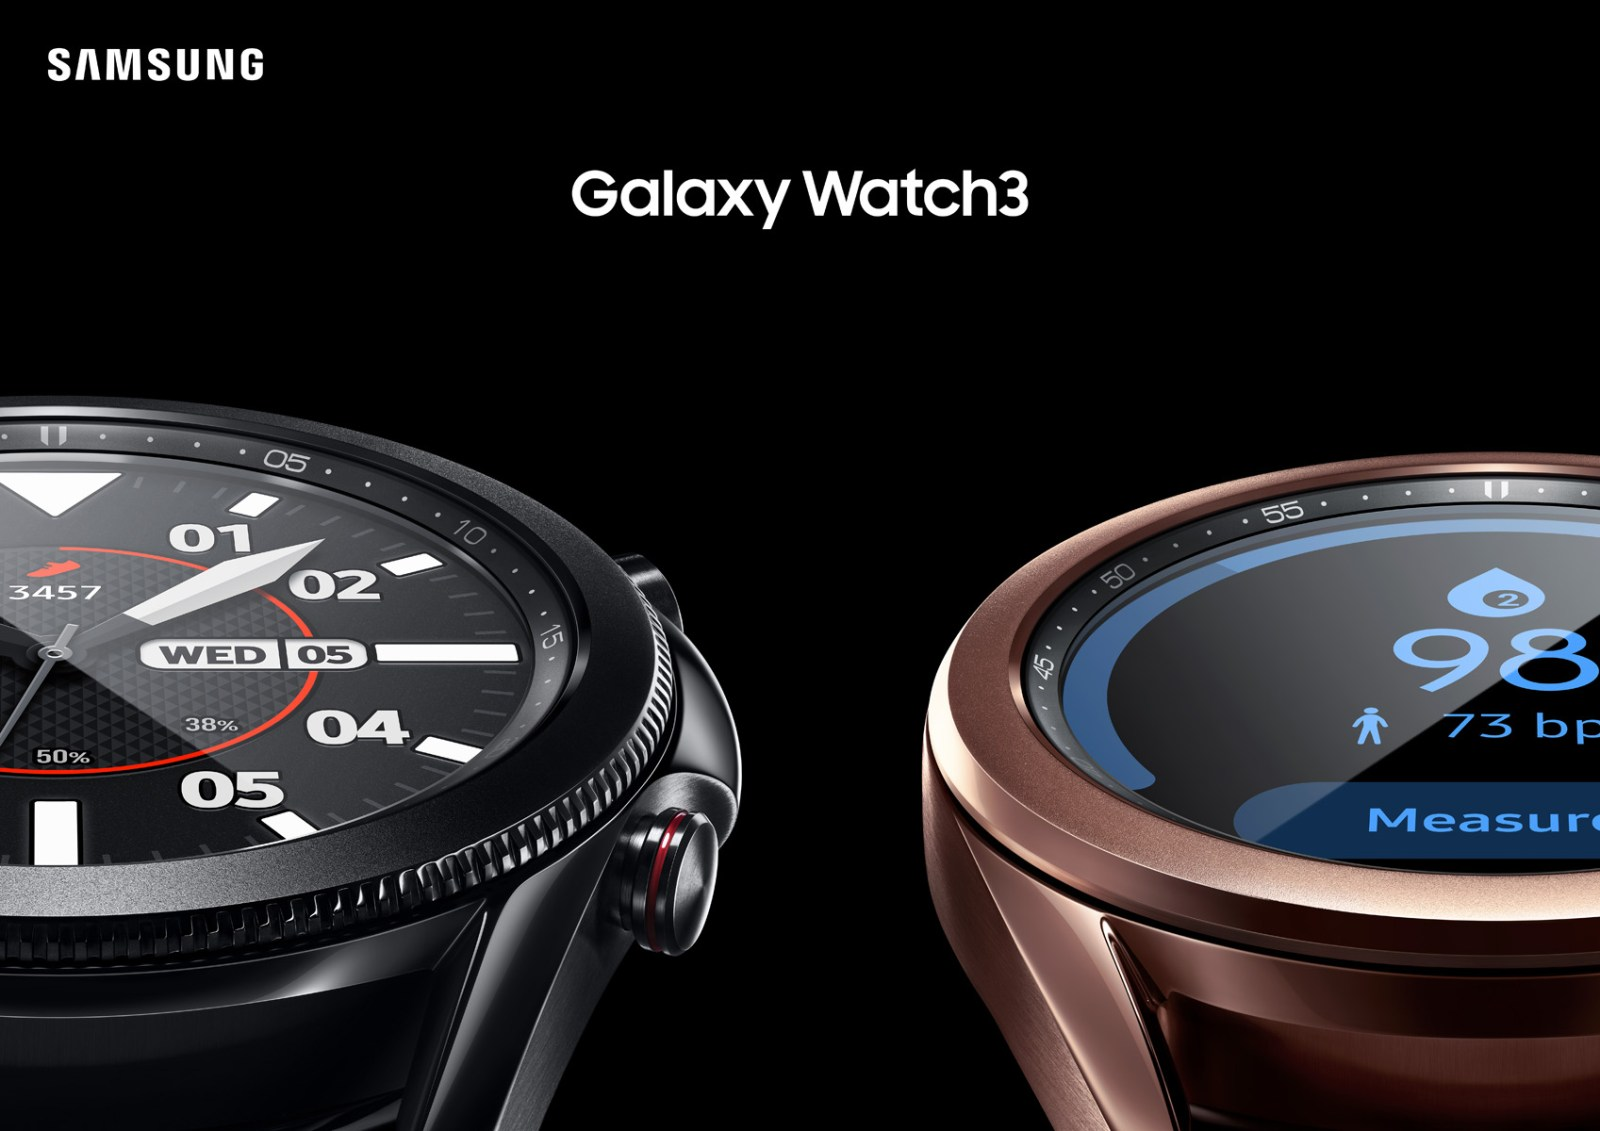 A brand New Samsung Galaxy Watch series 3 features